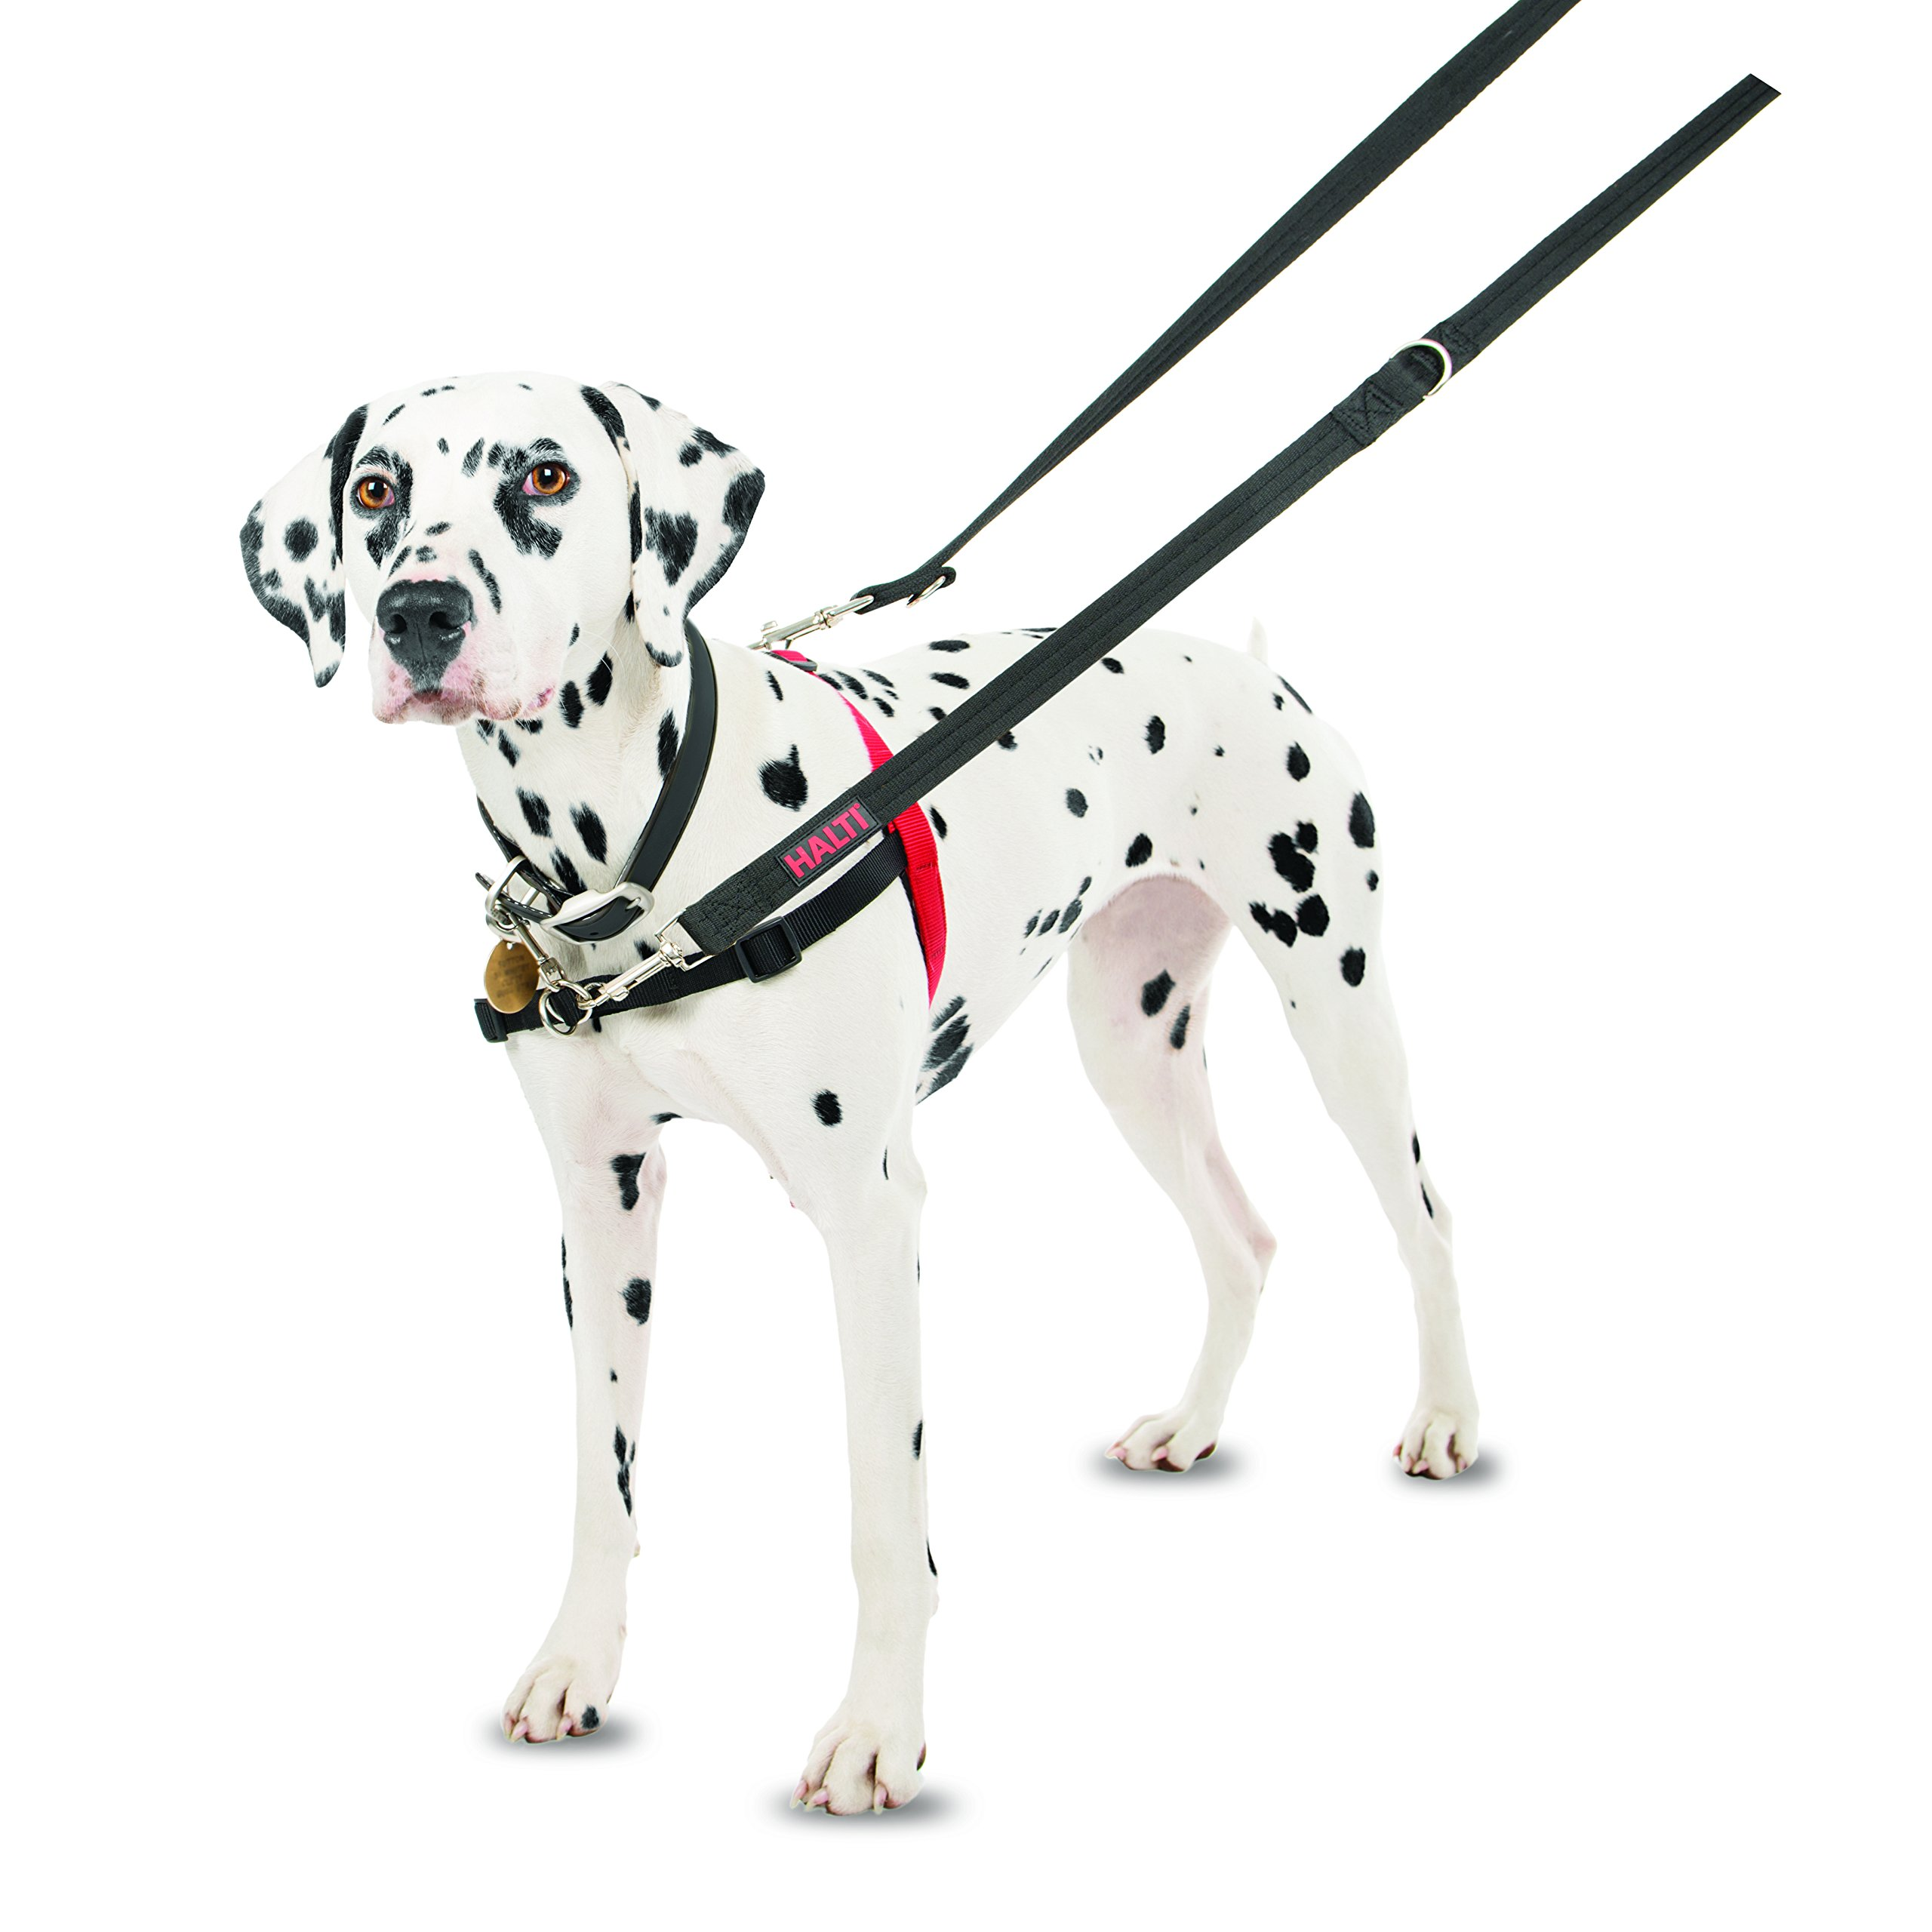 The Company of Animals - HALTI Training Harness - Durable and Adjustable - Comfortable Padded fit - Medium - Black & Red by The Company of Animals (Image #5)